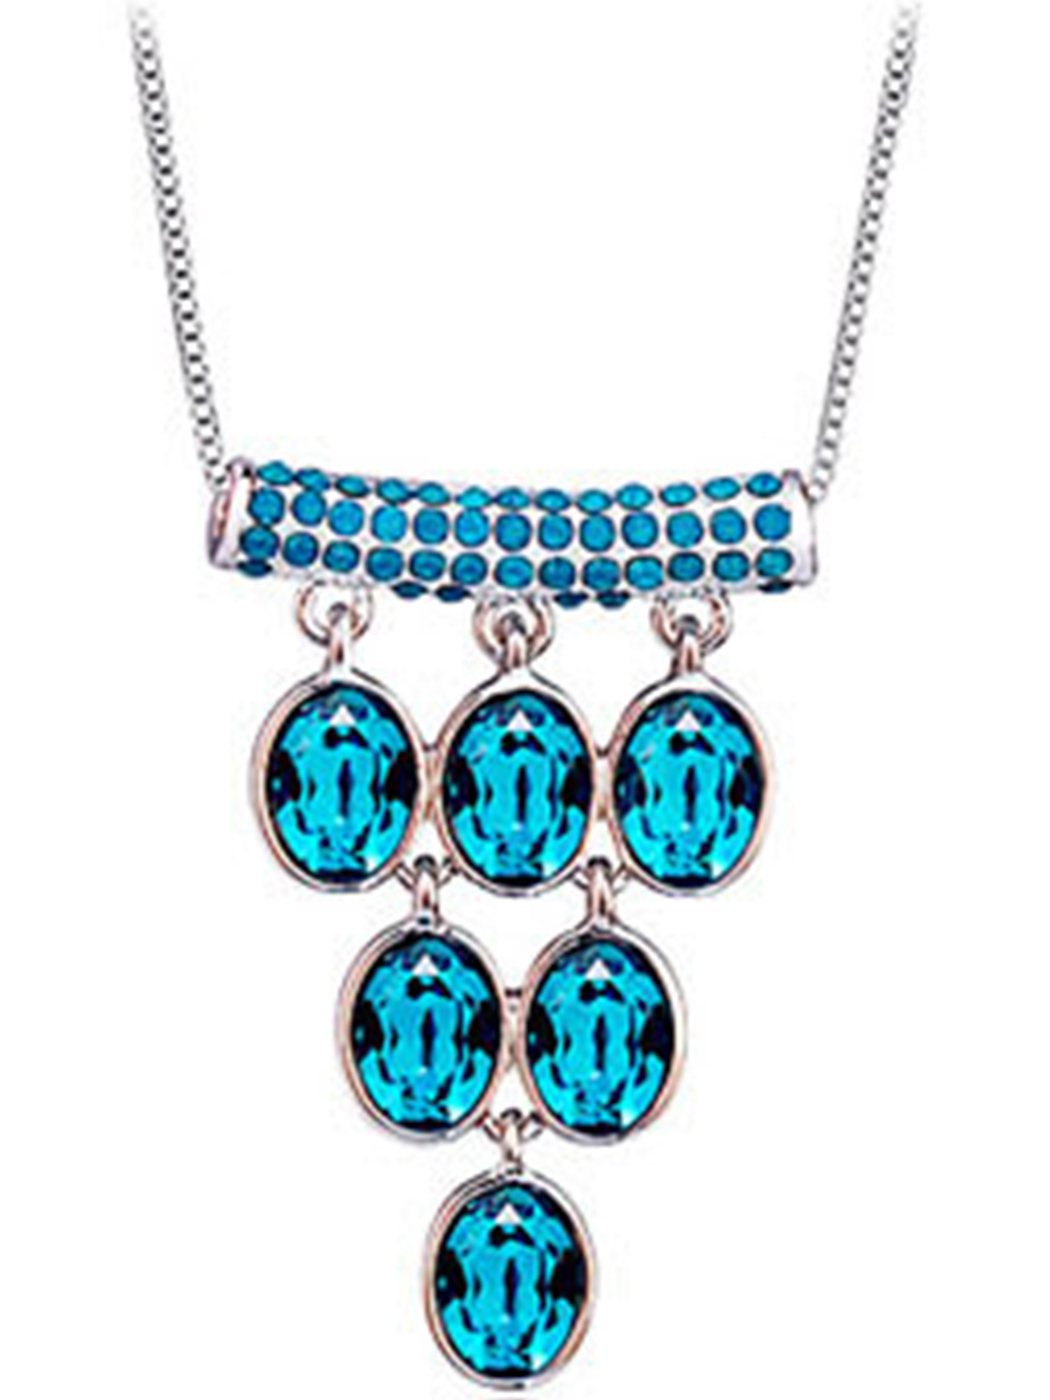 Fashion Necklaces & Pendants Aquamarine Seawater Blue Pertaining To Most Recently Released Reversible Diamond, Sapphire And Aquamarine Pendant Necklaces (View 12 of 25)